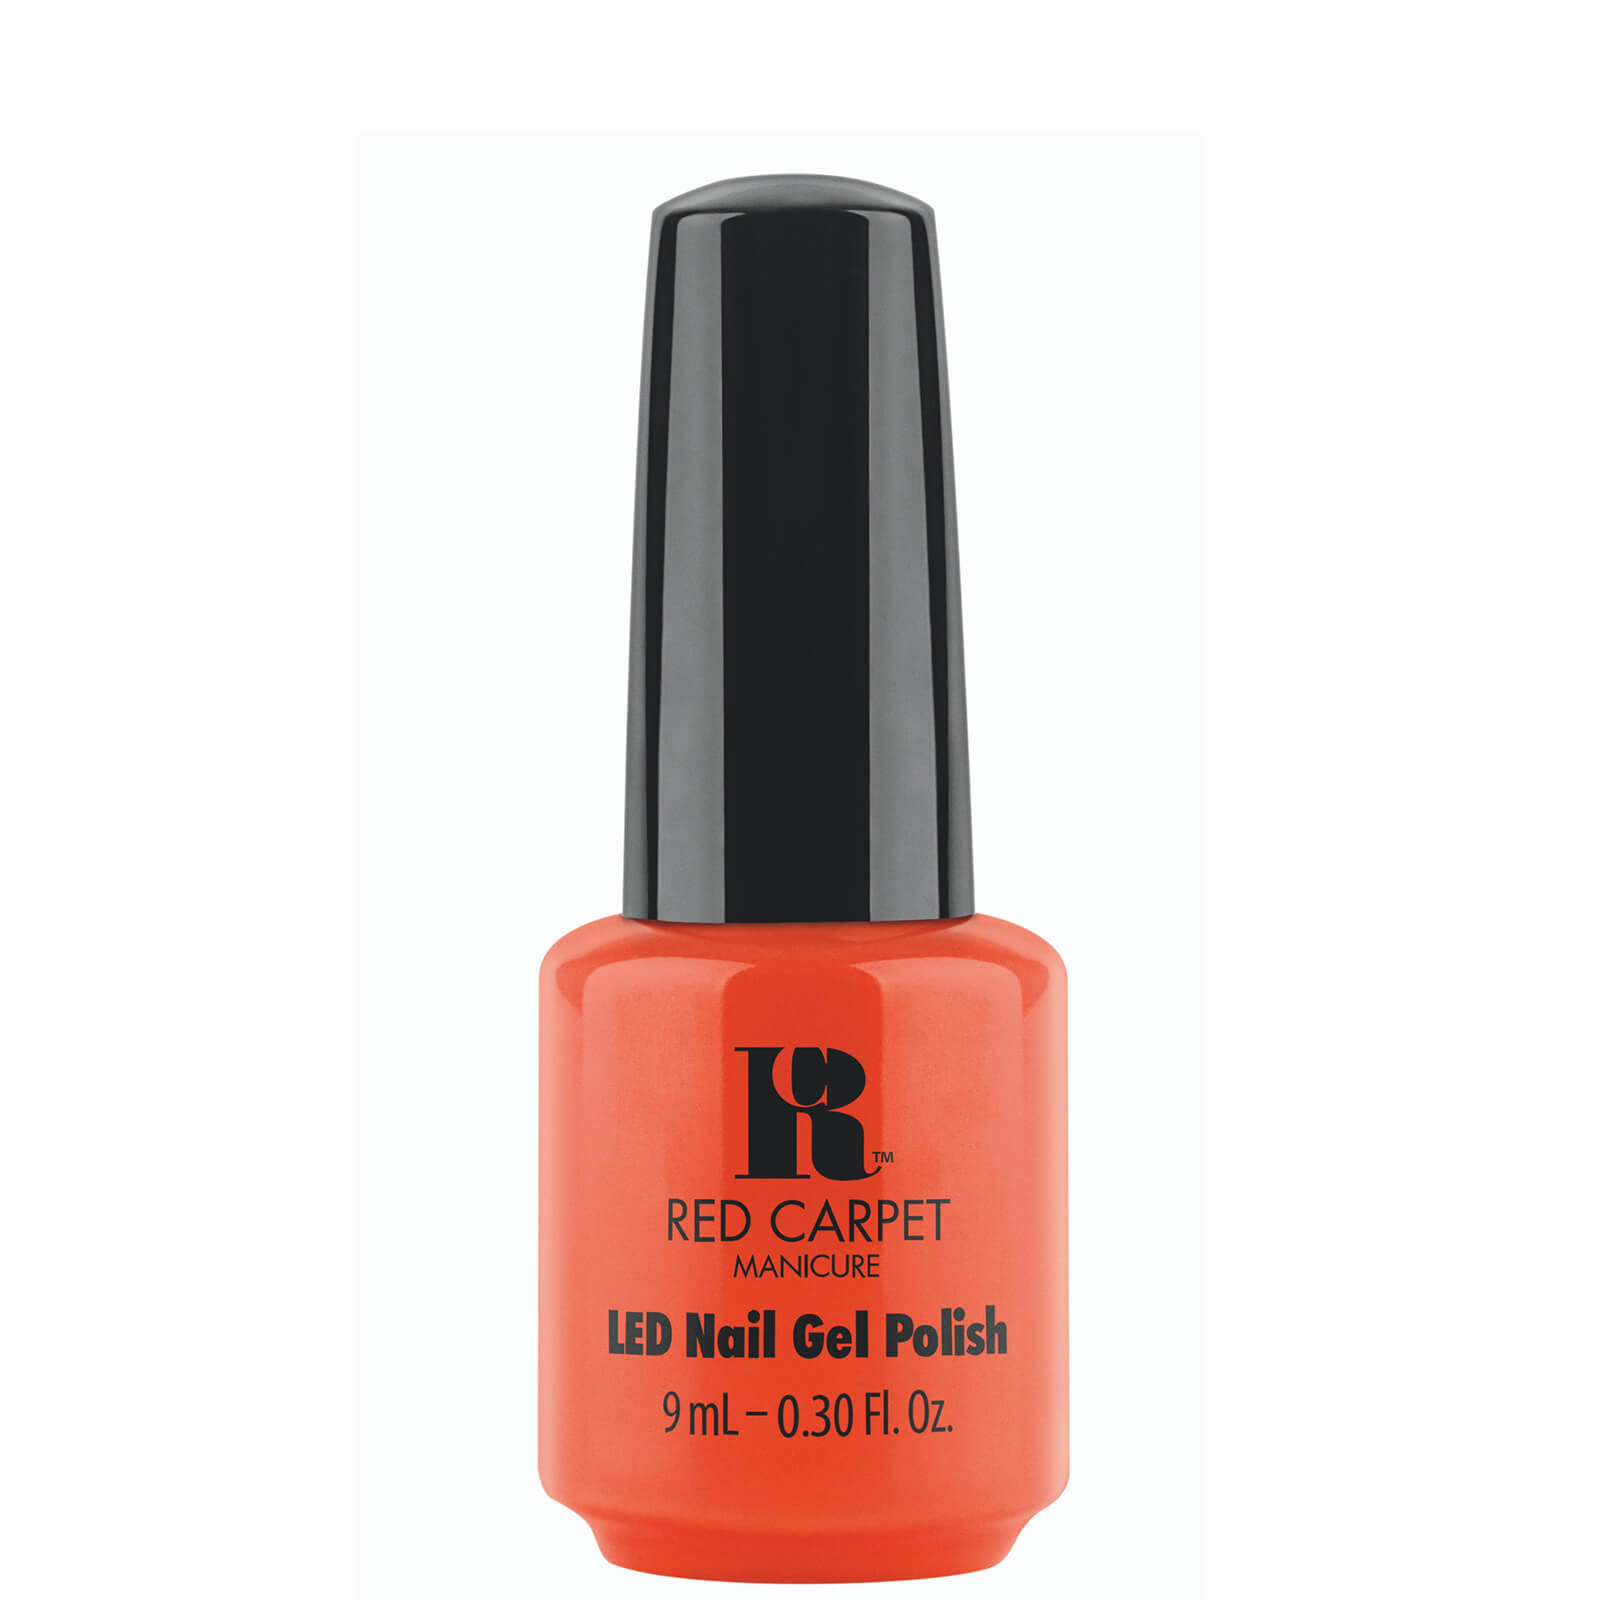 Red Carpet Manicure Neon Nights LED Gel Polish 9ml